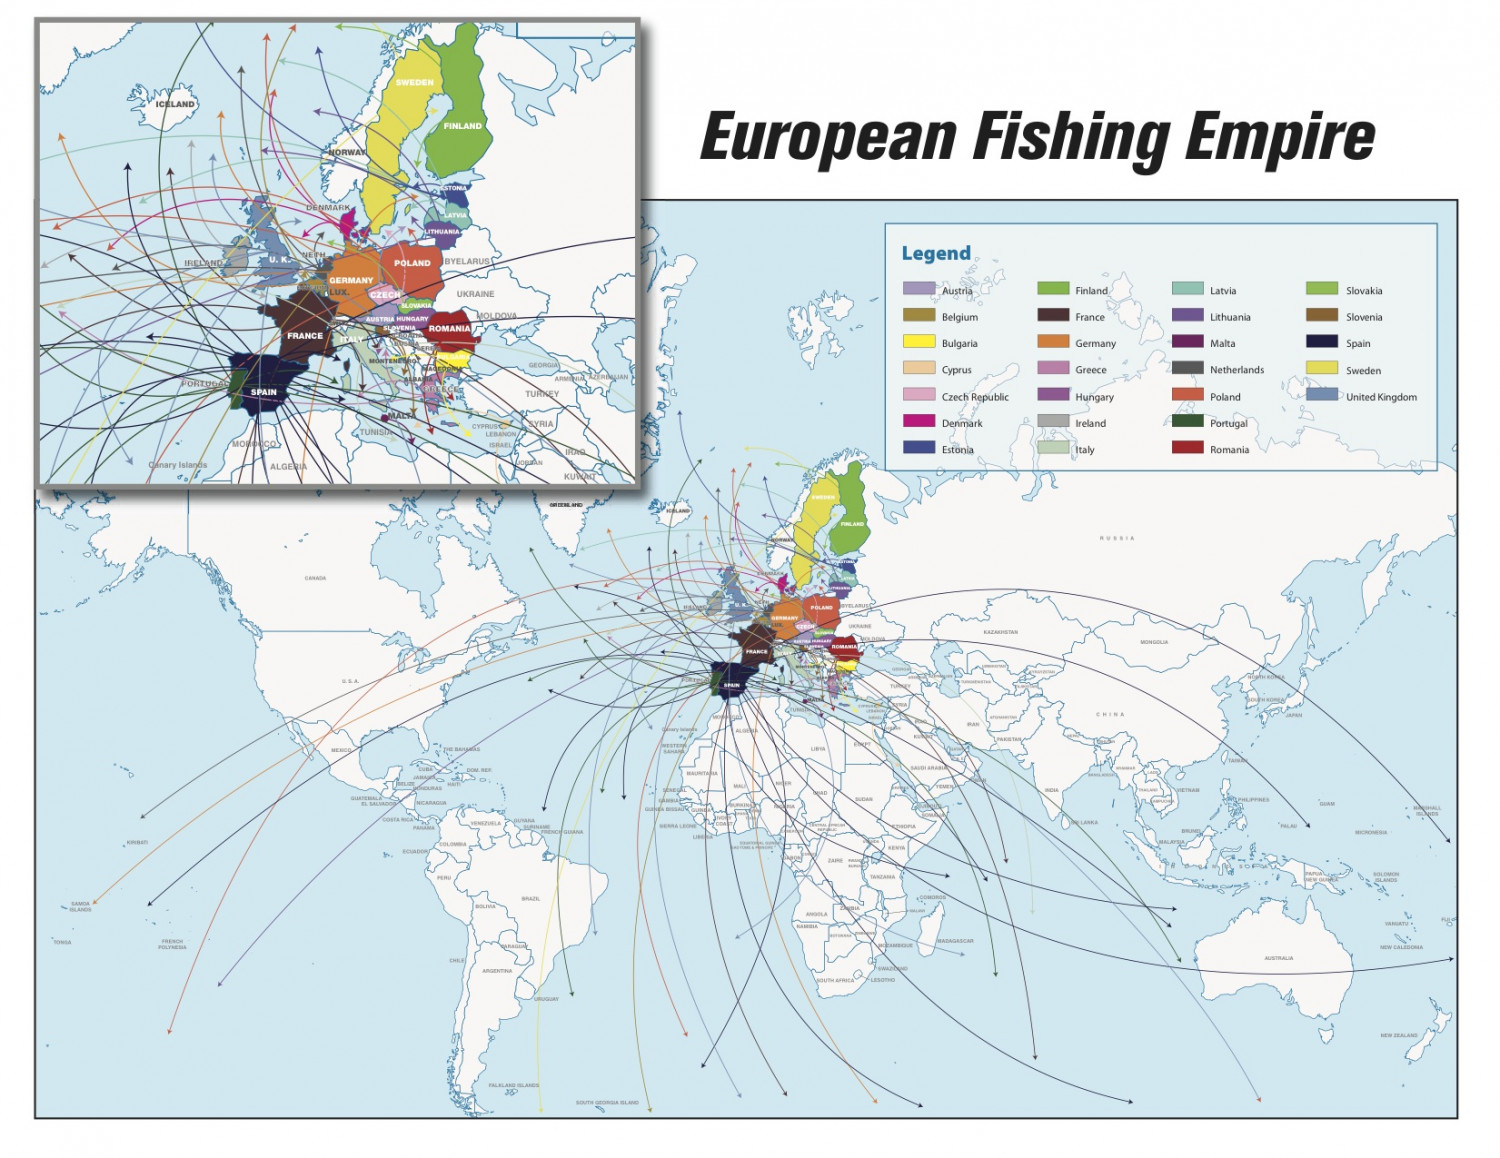 Europe's Bad Habit of Fishing for Jobs Infographic